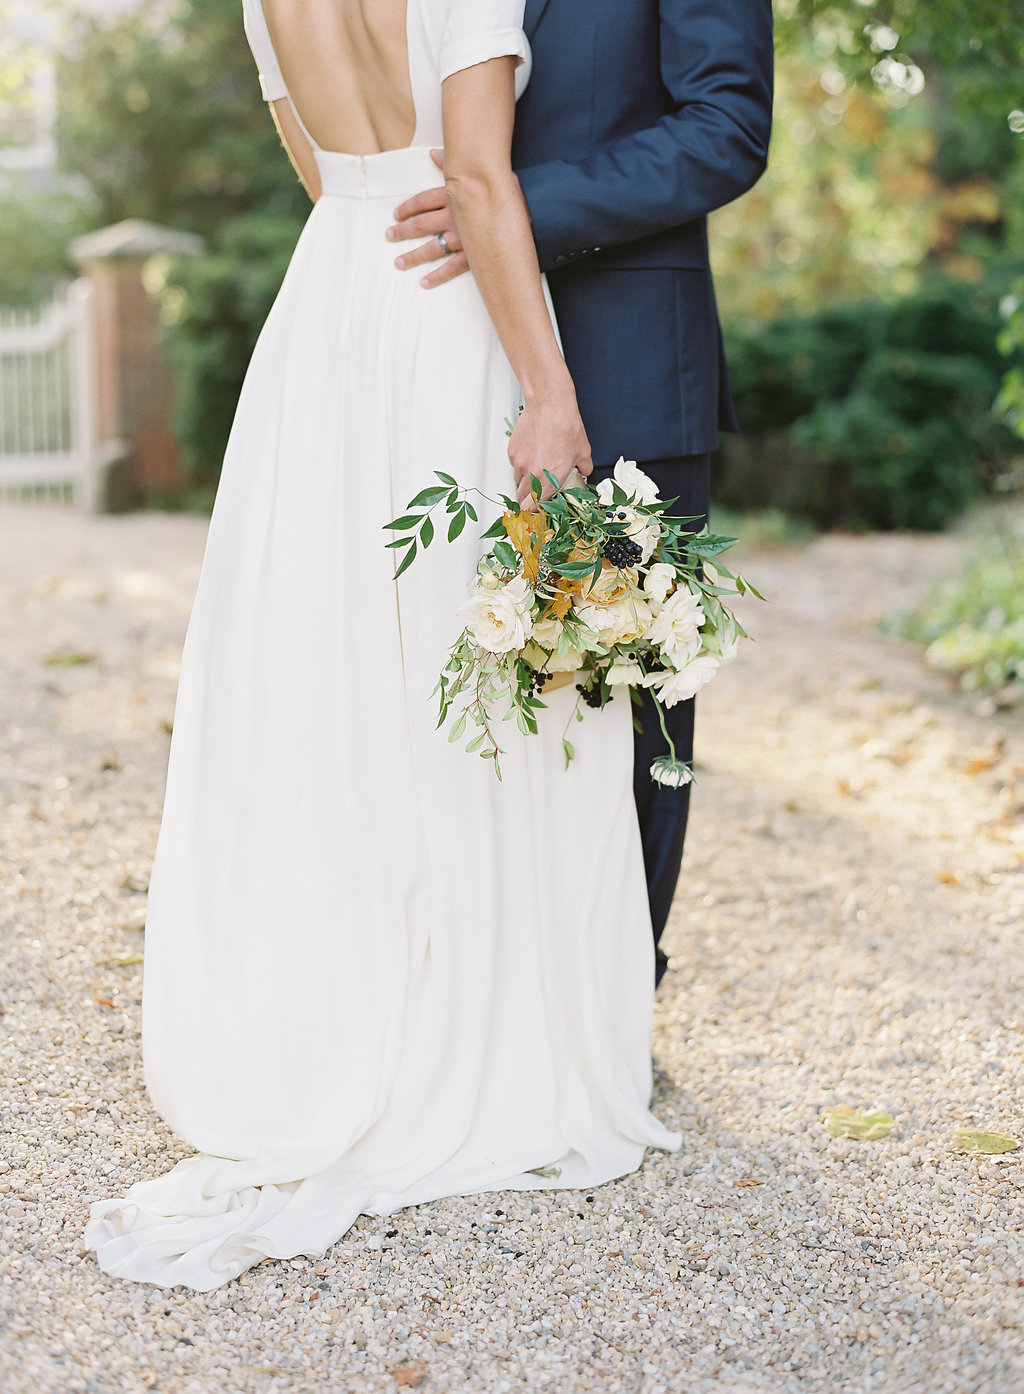 French Inspired Fall Wedding with Fine Art Destination Wedding Planner East Made Event Company and DC Film Photographer Vicki Grafton Photography at Tudor Place in Washington DC-32.jpg